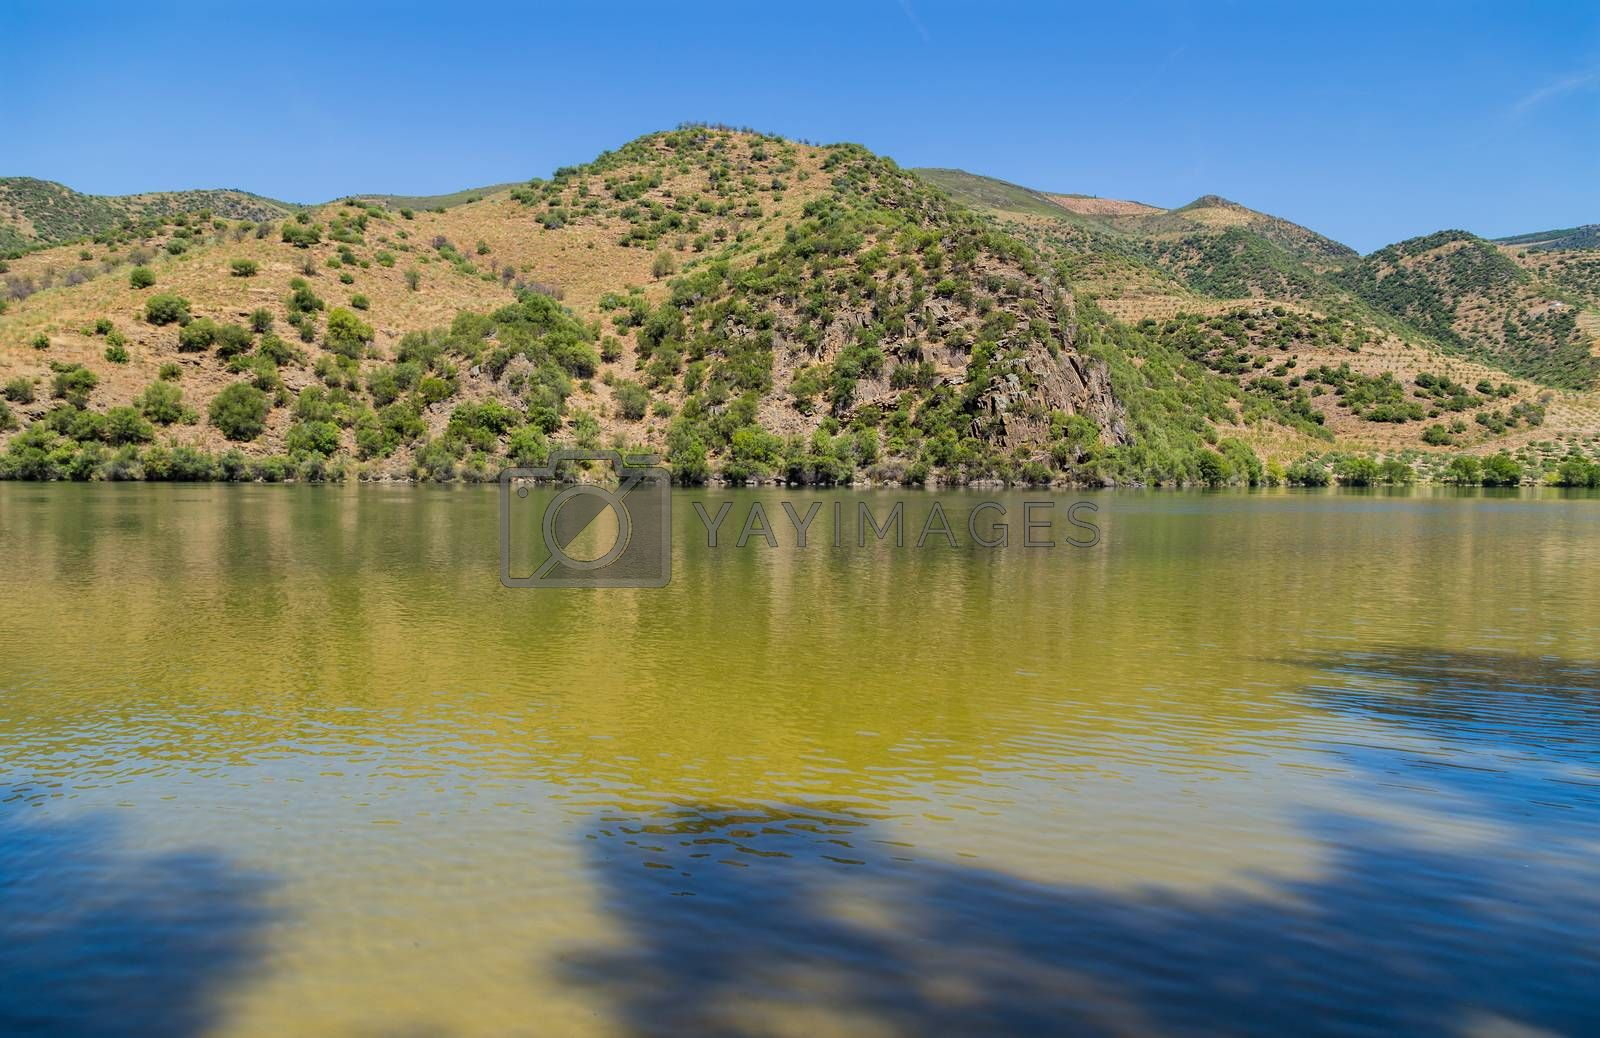 Royalty free image of Scenic view of the Douro Valley and river by zittto